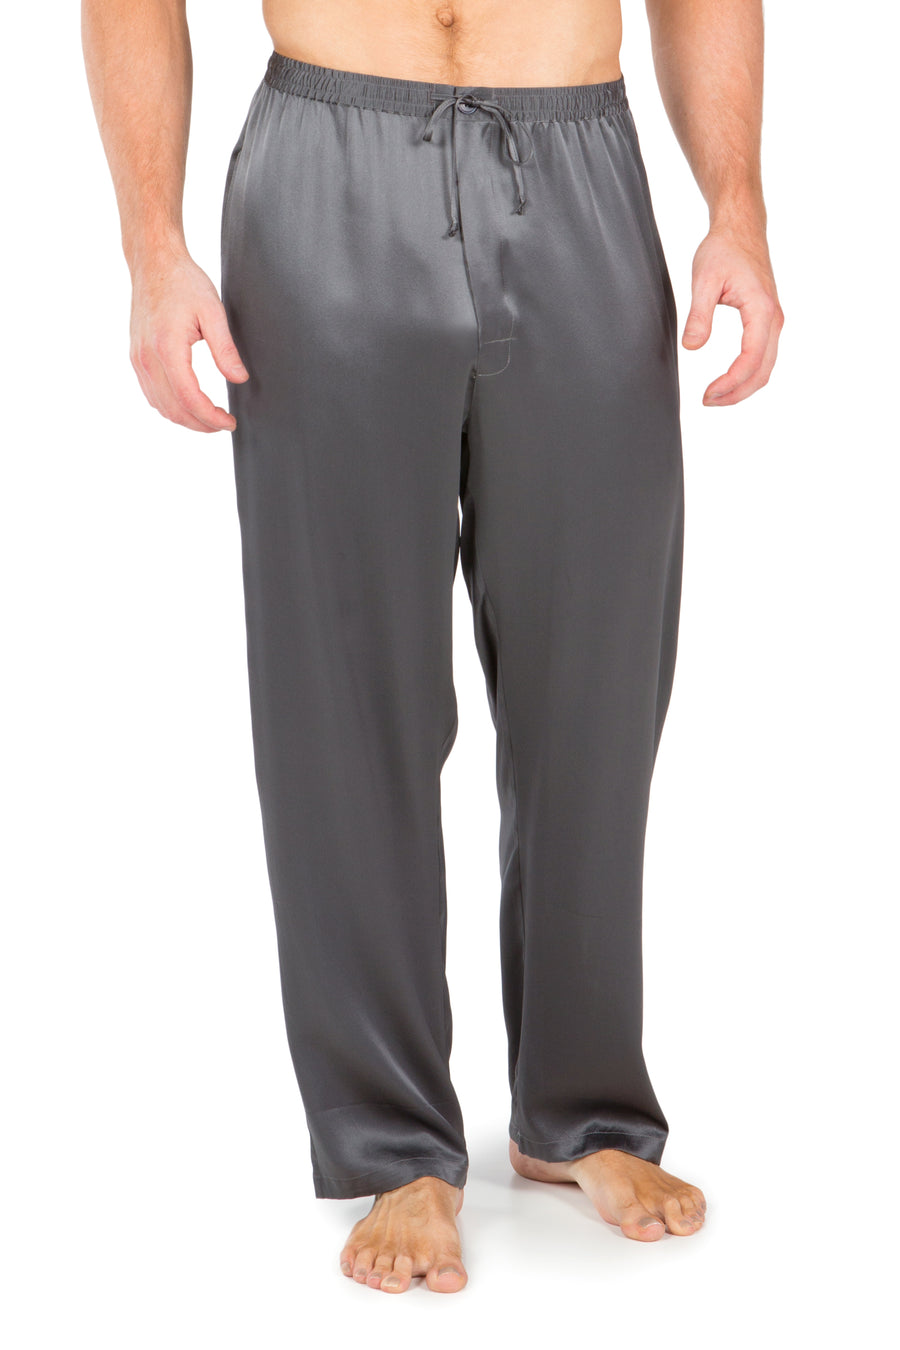 Hiruko - Men's Silk PJ Pants - testing23451234 - Pajamas